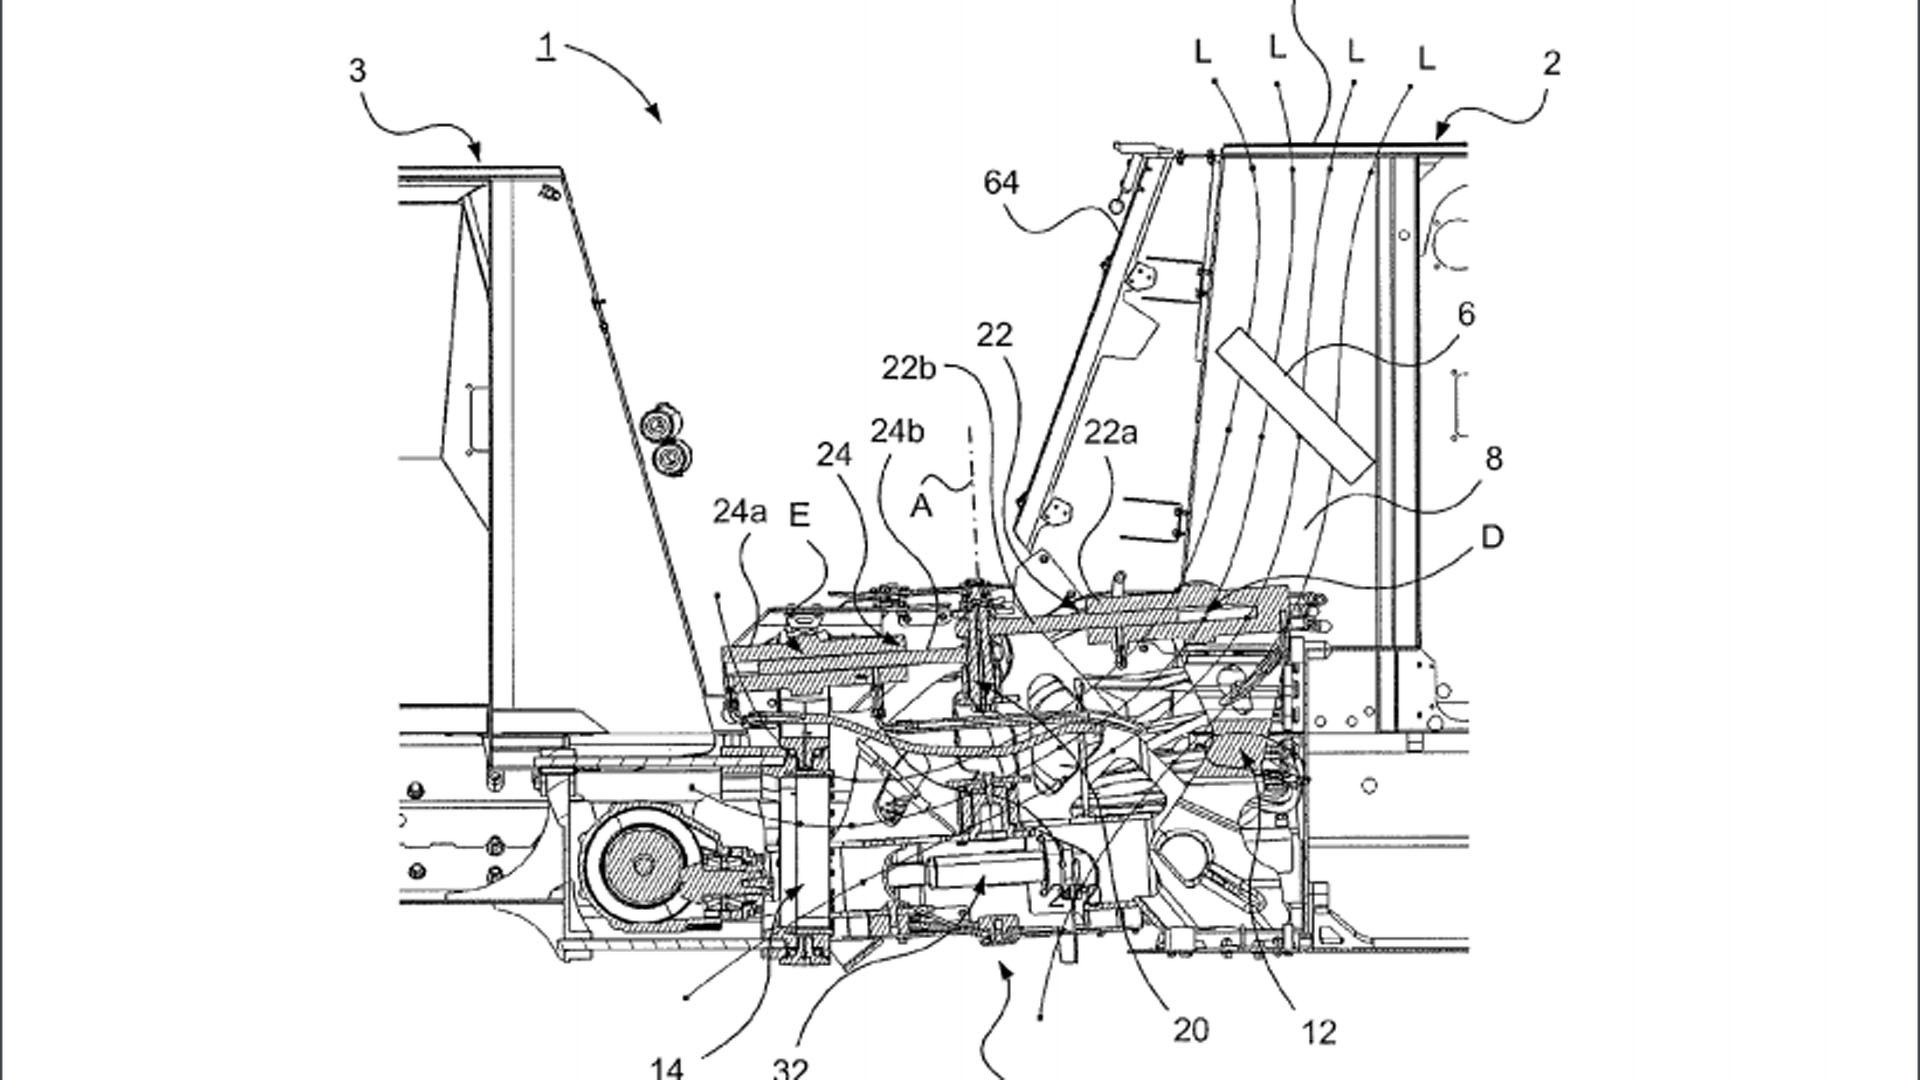 Apple Patented An Articulated Steering System, Don't